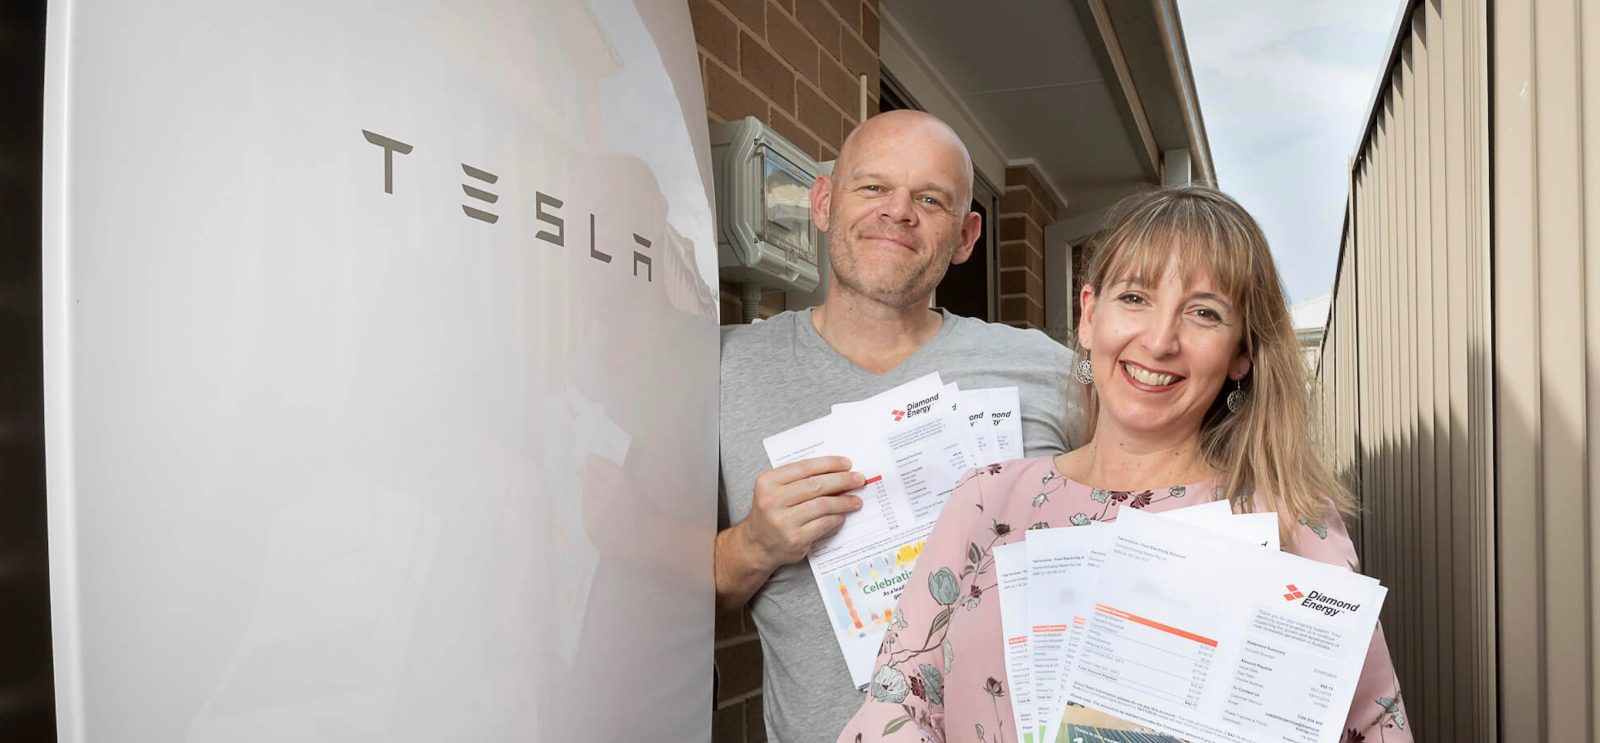 Tesla Powerwall helps family save over $8,000 on their power bill